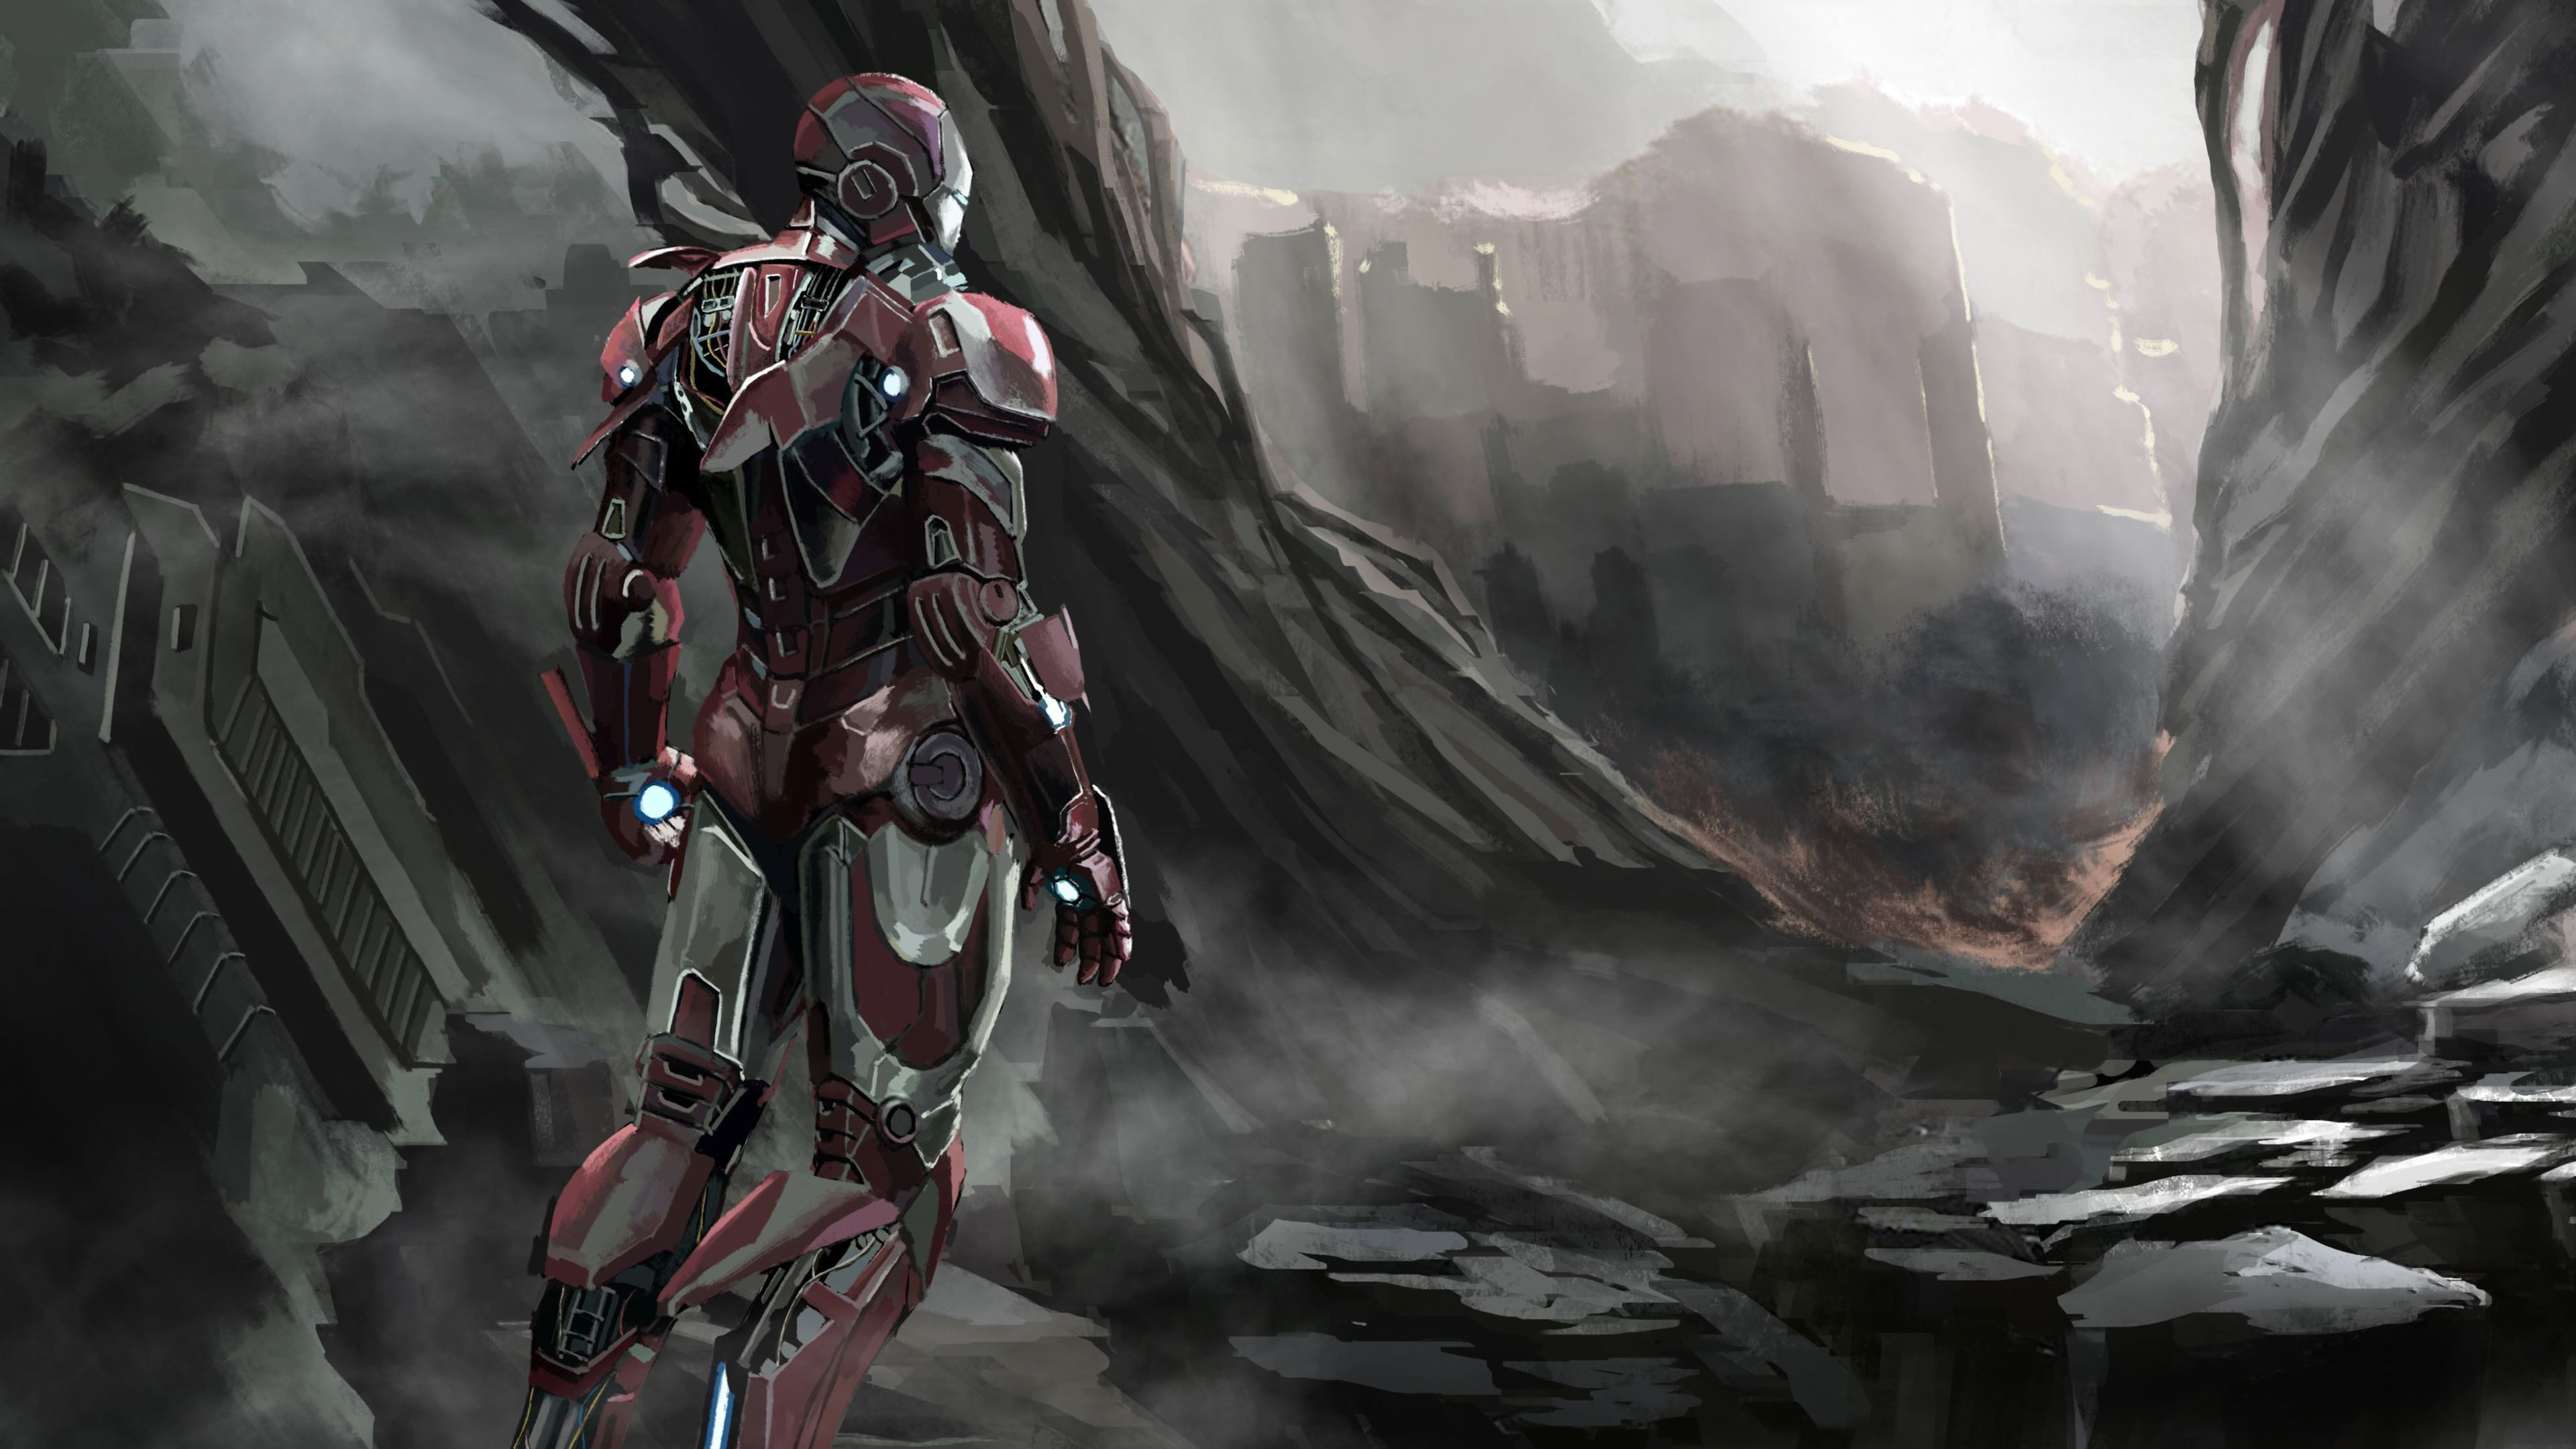 Iron Man Art 2019 4k fondos de pantalla de superhéroes, fondos de pantalla de iron man, hd